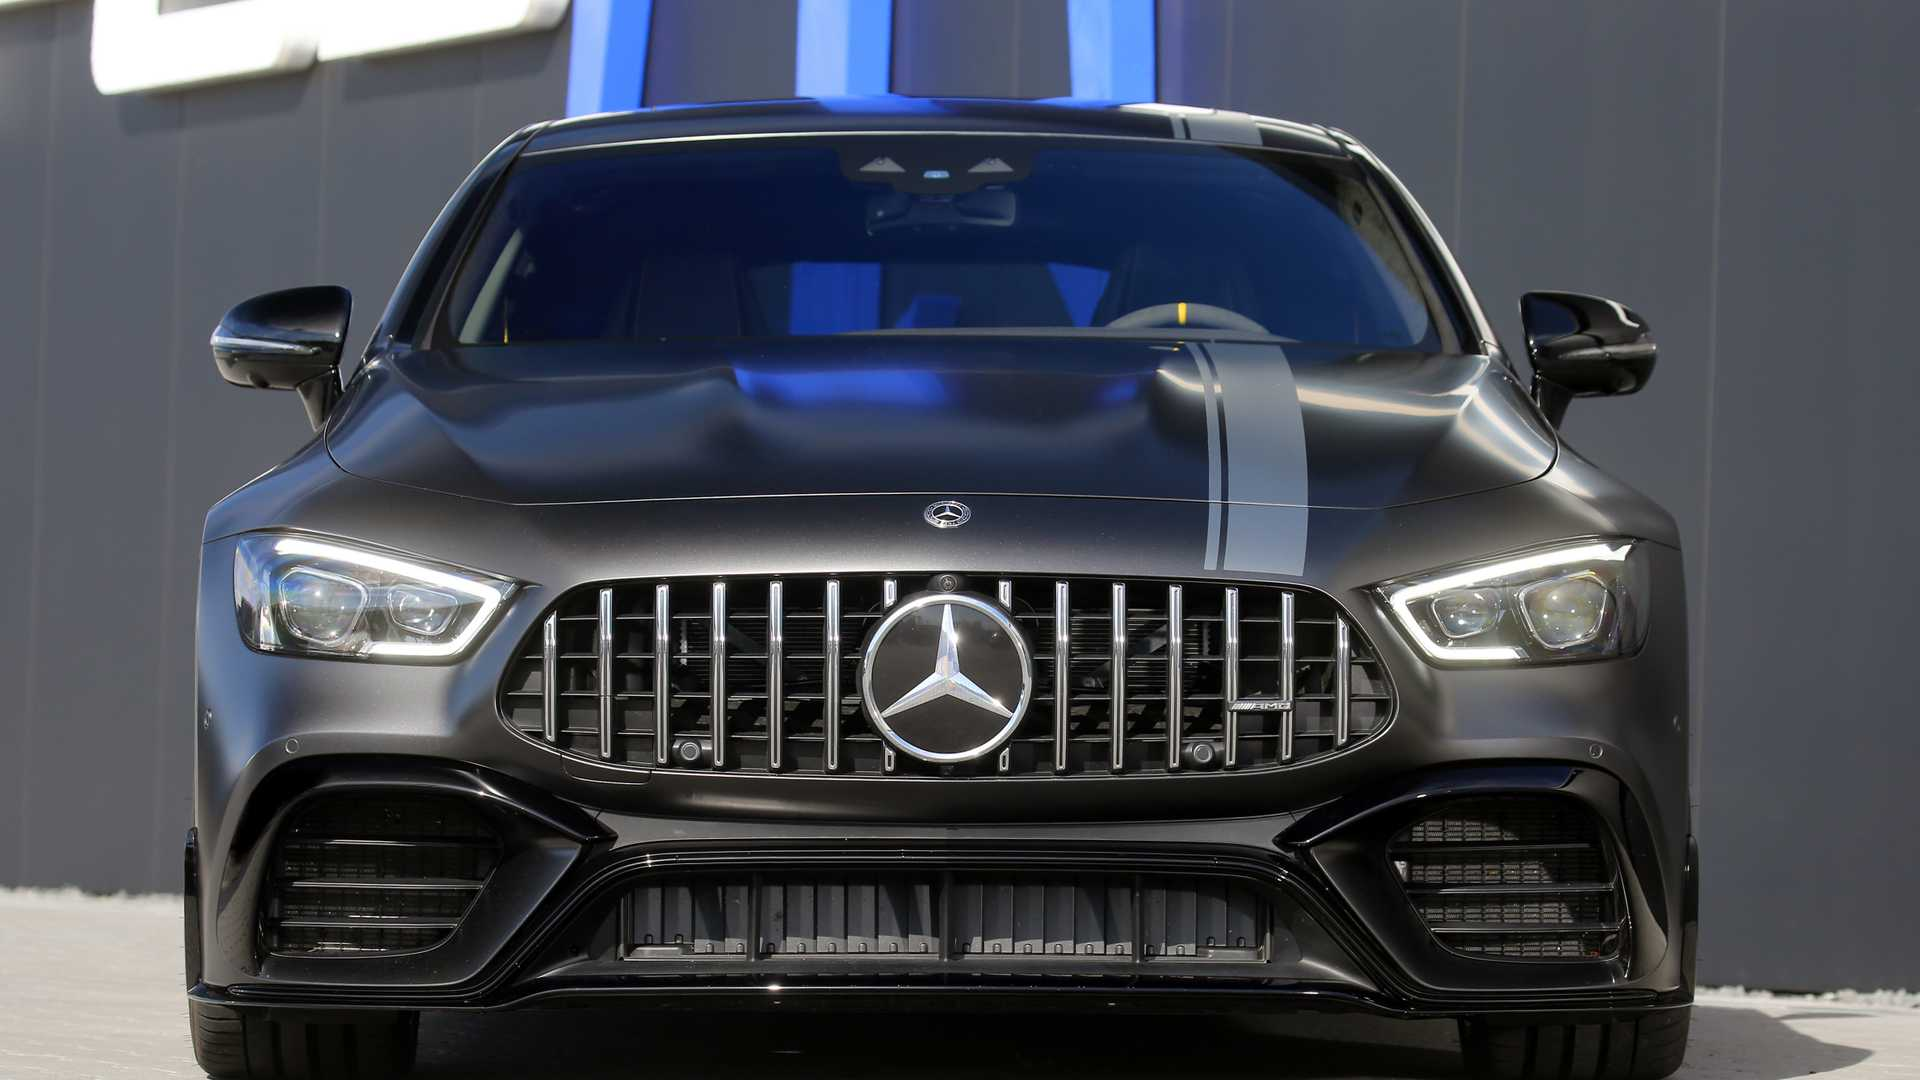 Posaidon Mercedes-AMG GT 63 S